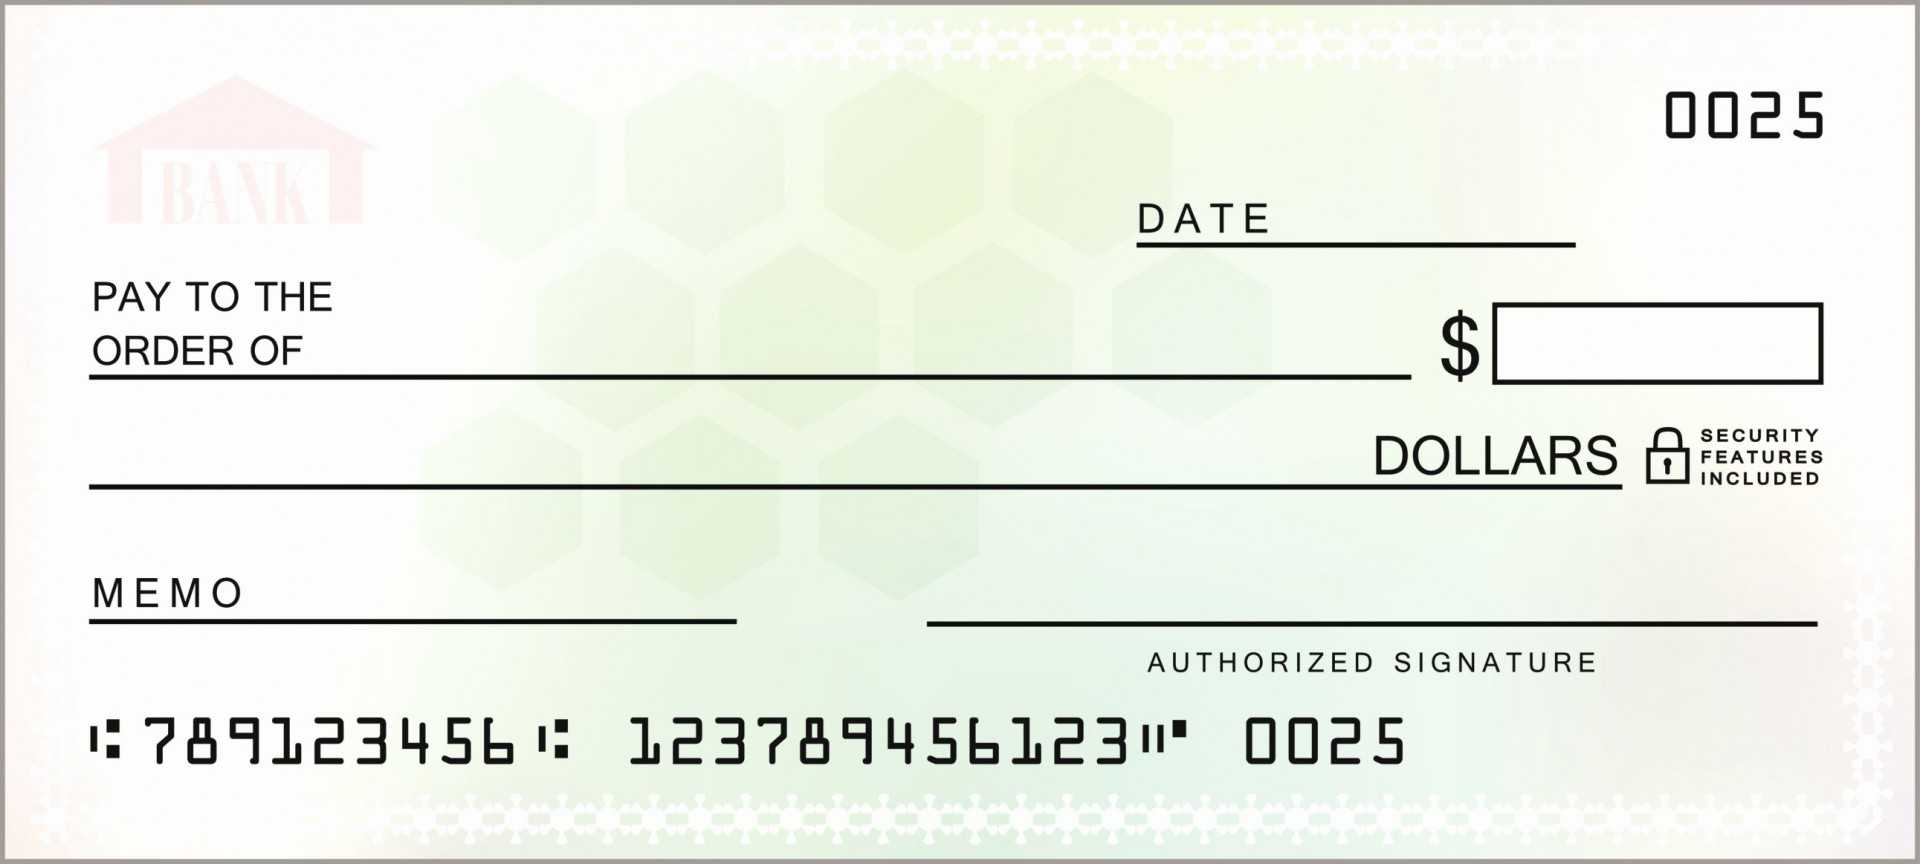 017 Stock Photo Blank Cheque Check Template Illustration Pdf inside Blank Cheque Template Uk